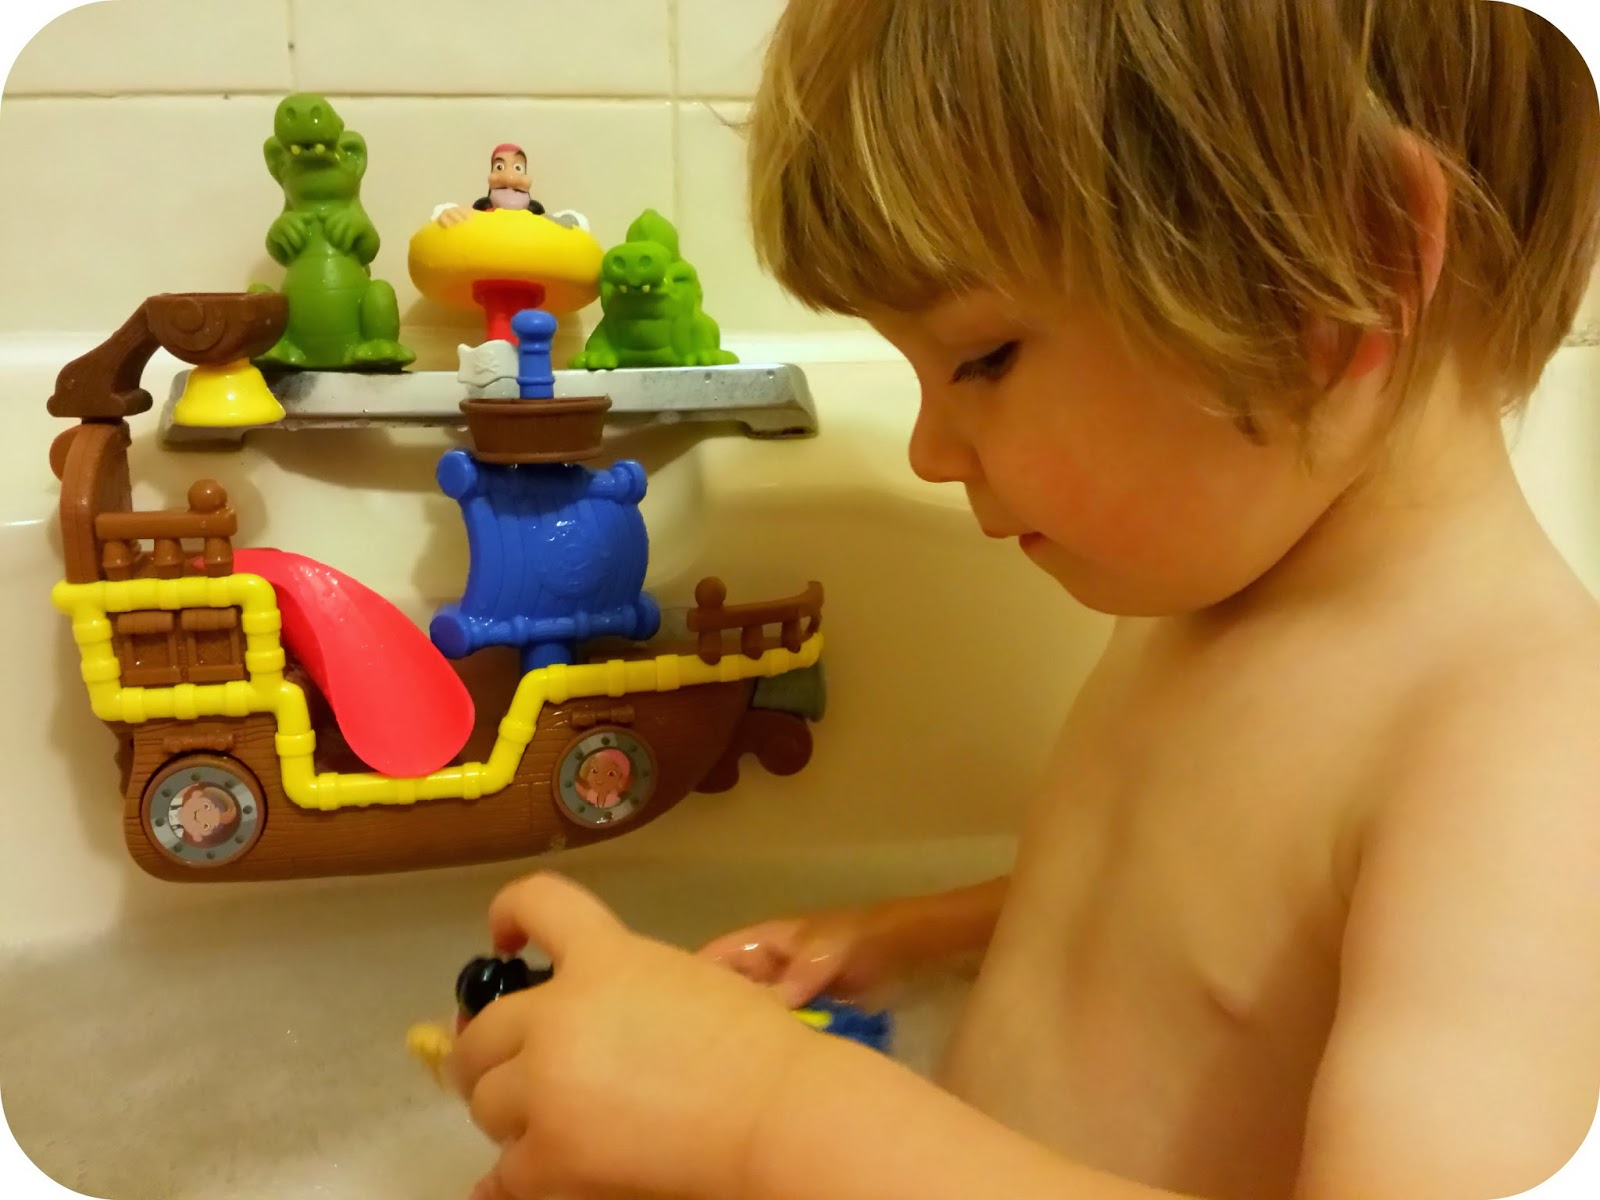 The Adventure of Parenthood: Fisher Price